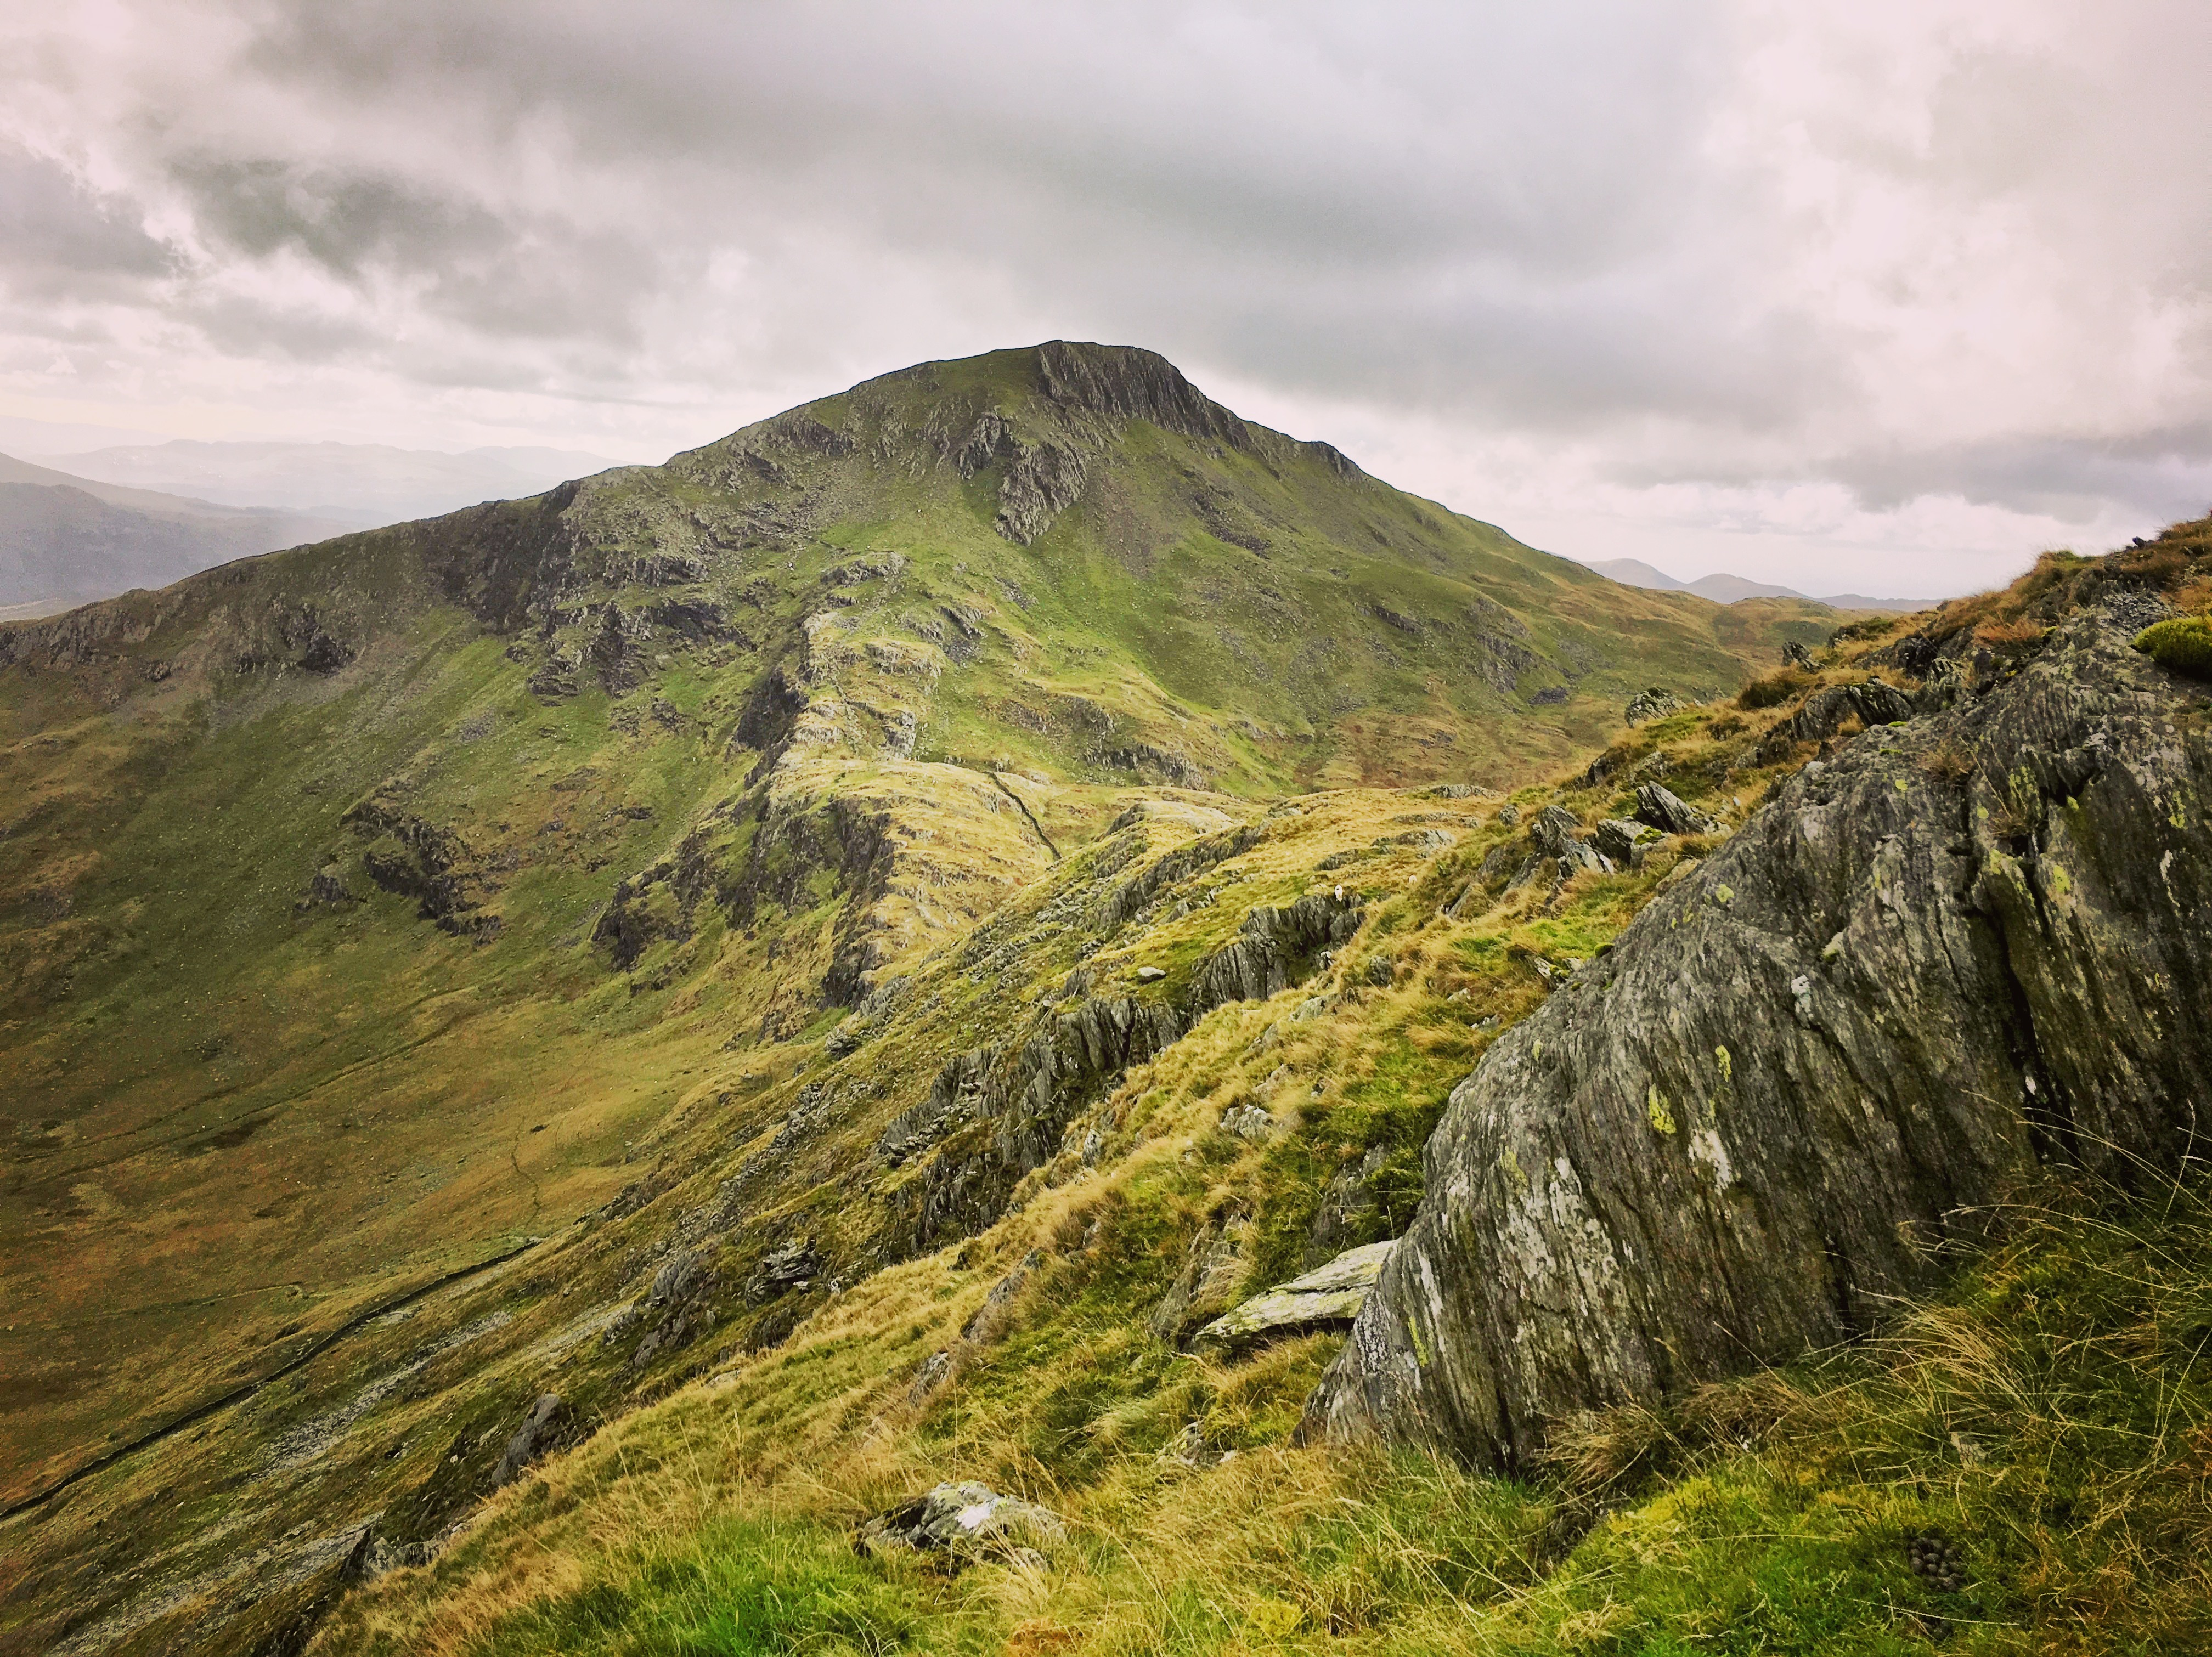 A mountain on the 3 peaks challenge